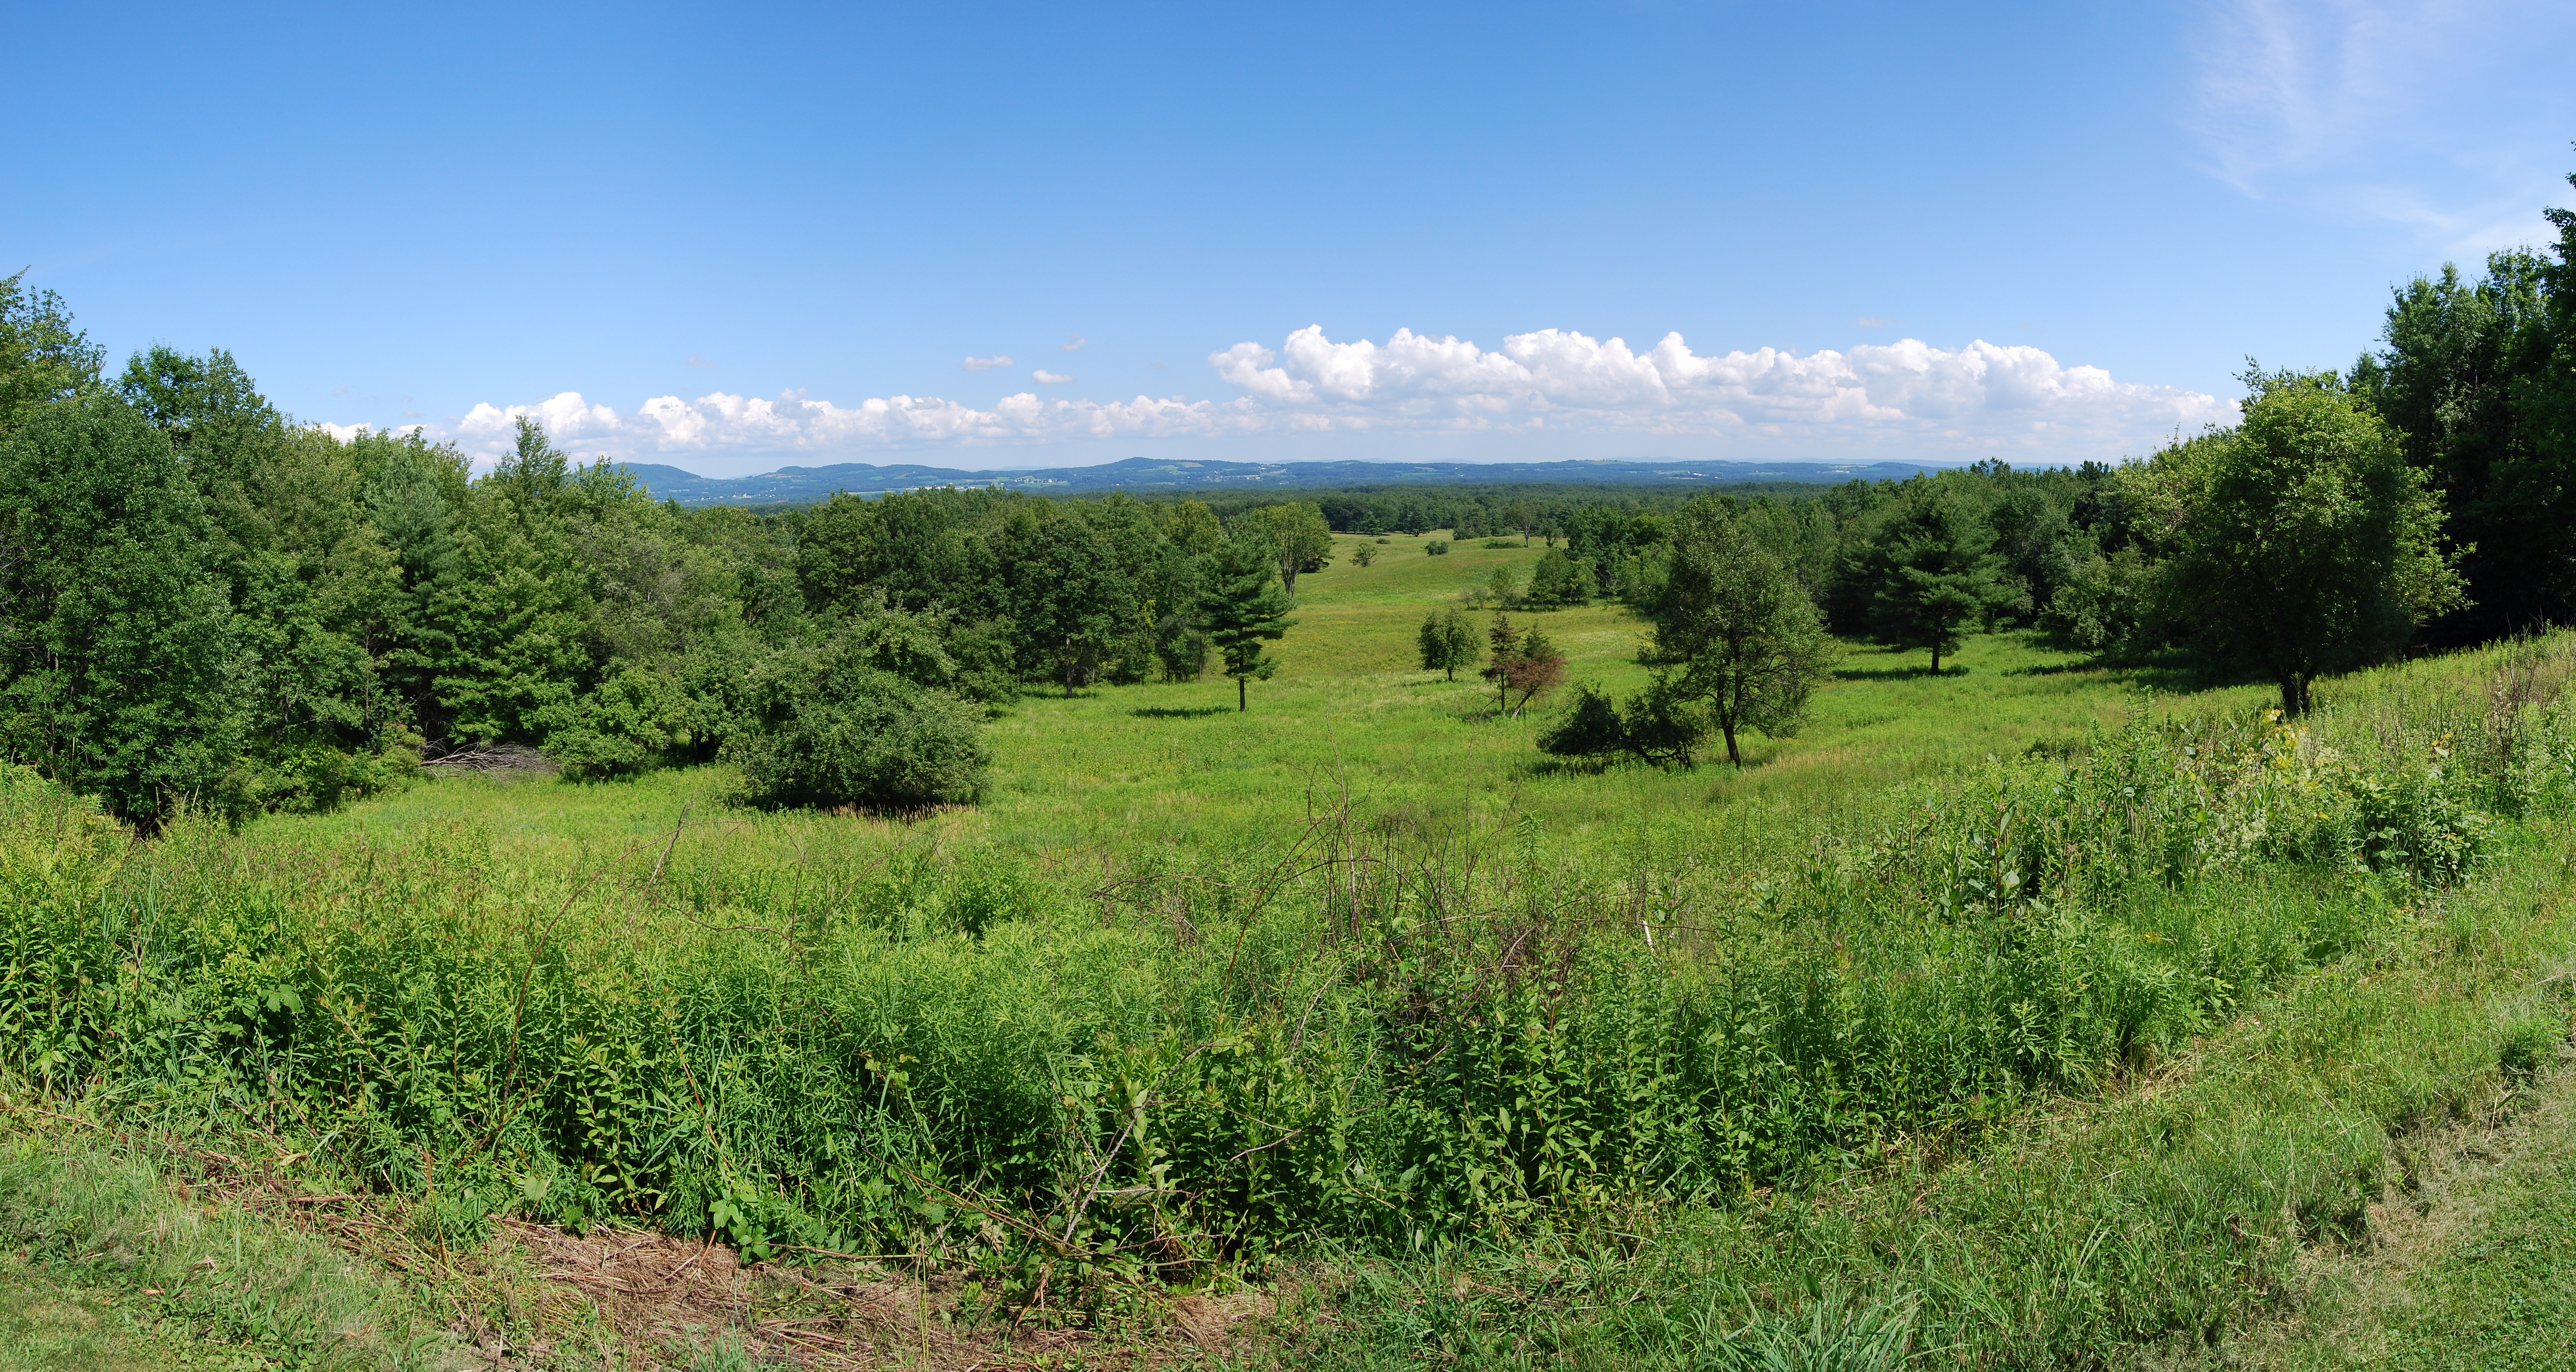 Battlefield of the Battle of Saratoga,, as viewed from the visitor center of Saratoga National Historic Park, in Stillwater, New York, United States, Photo taken on July 10, 2009.